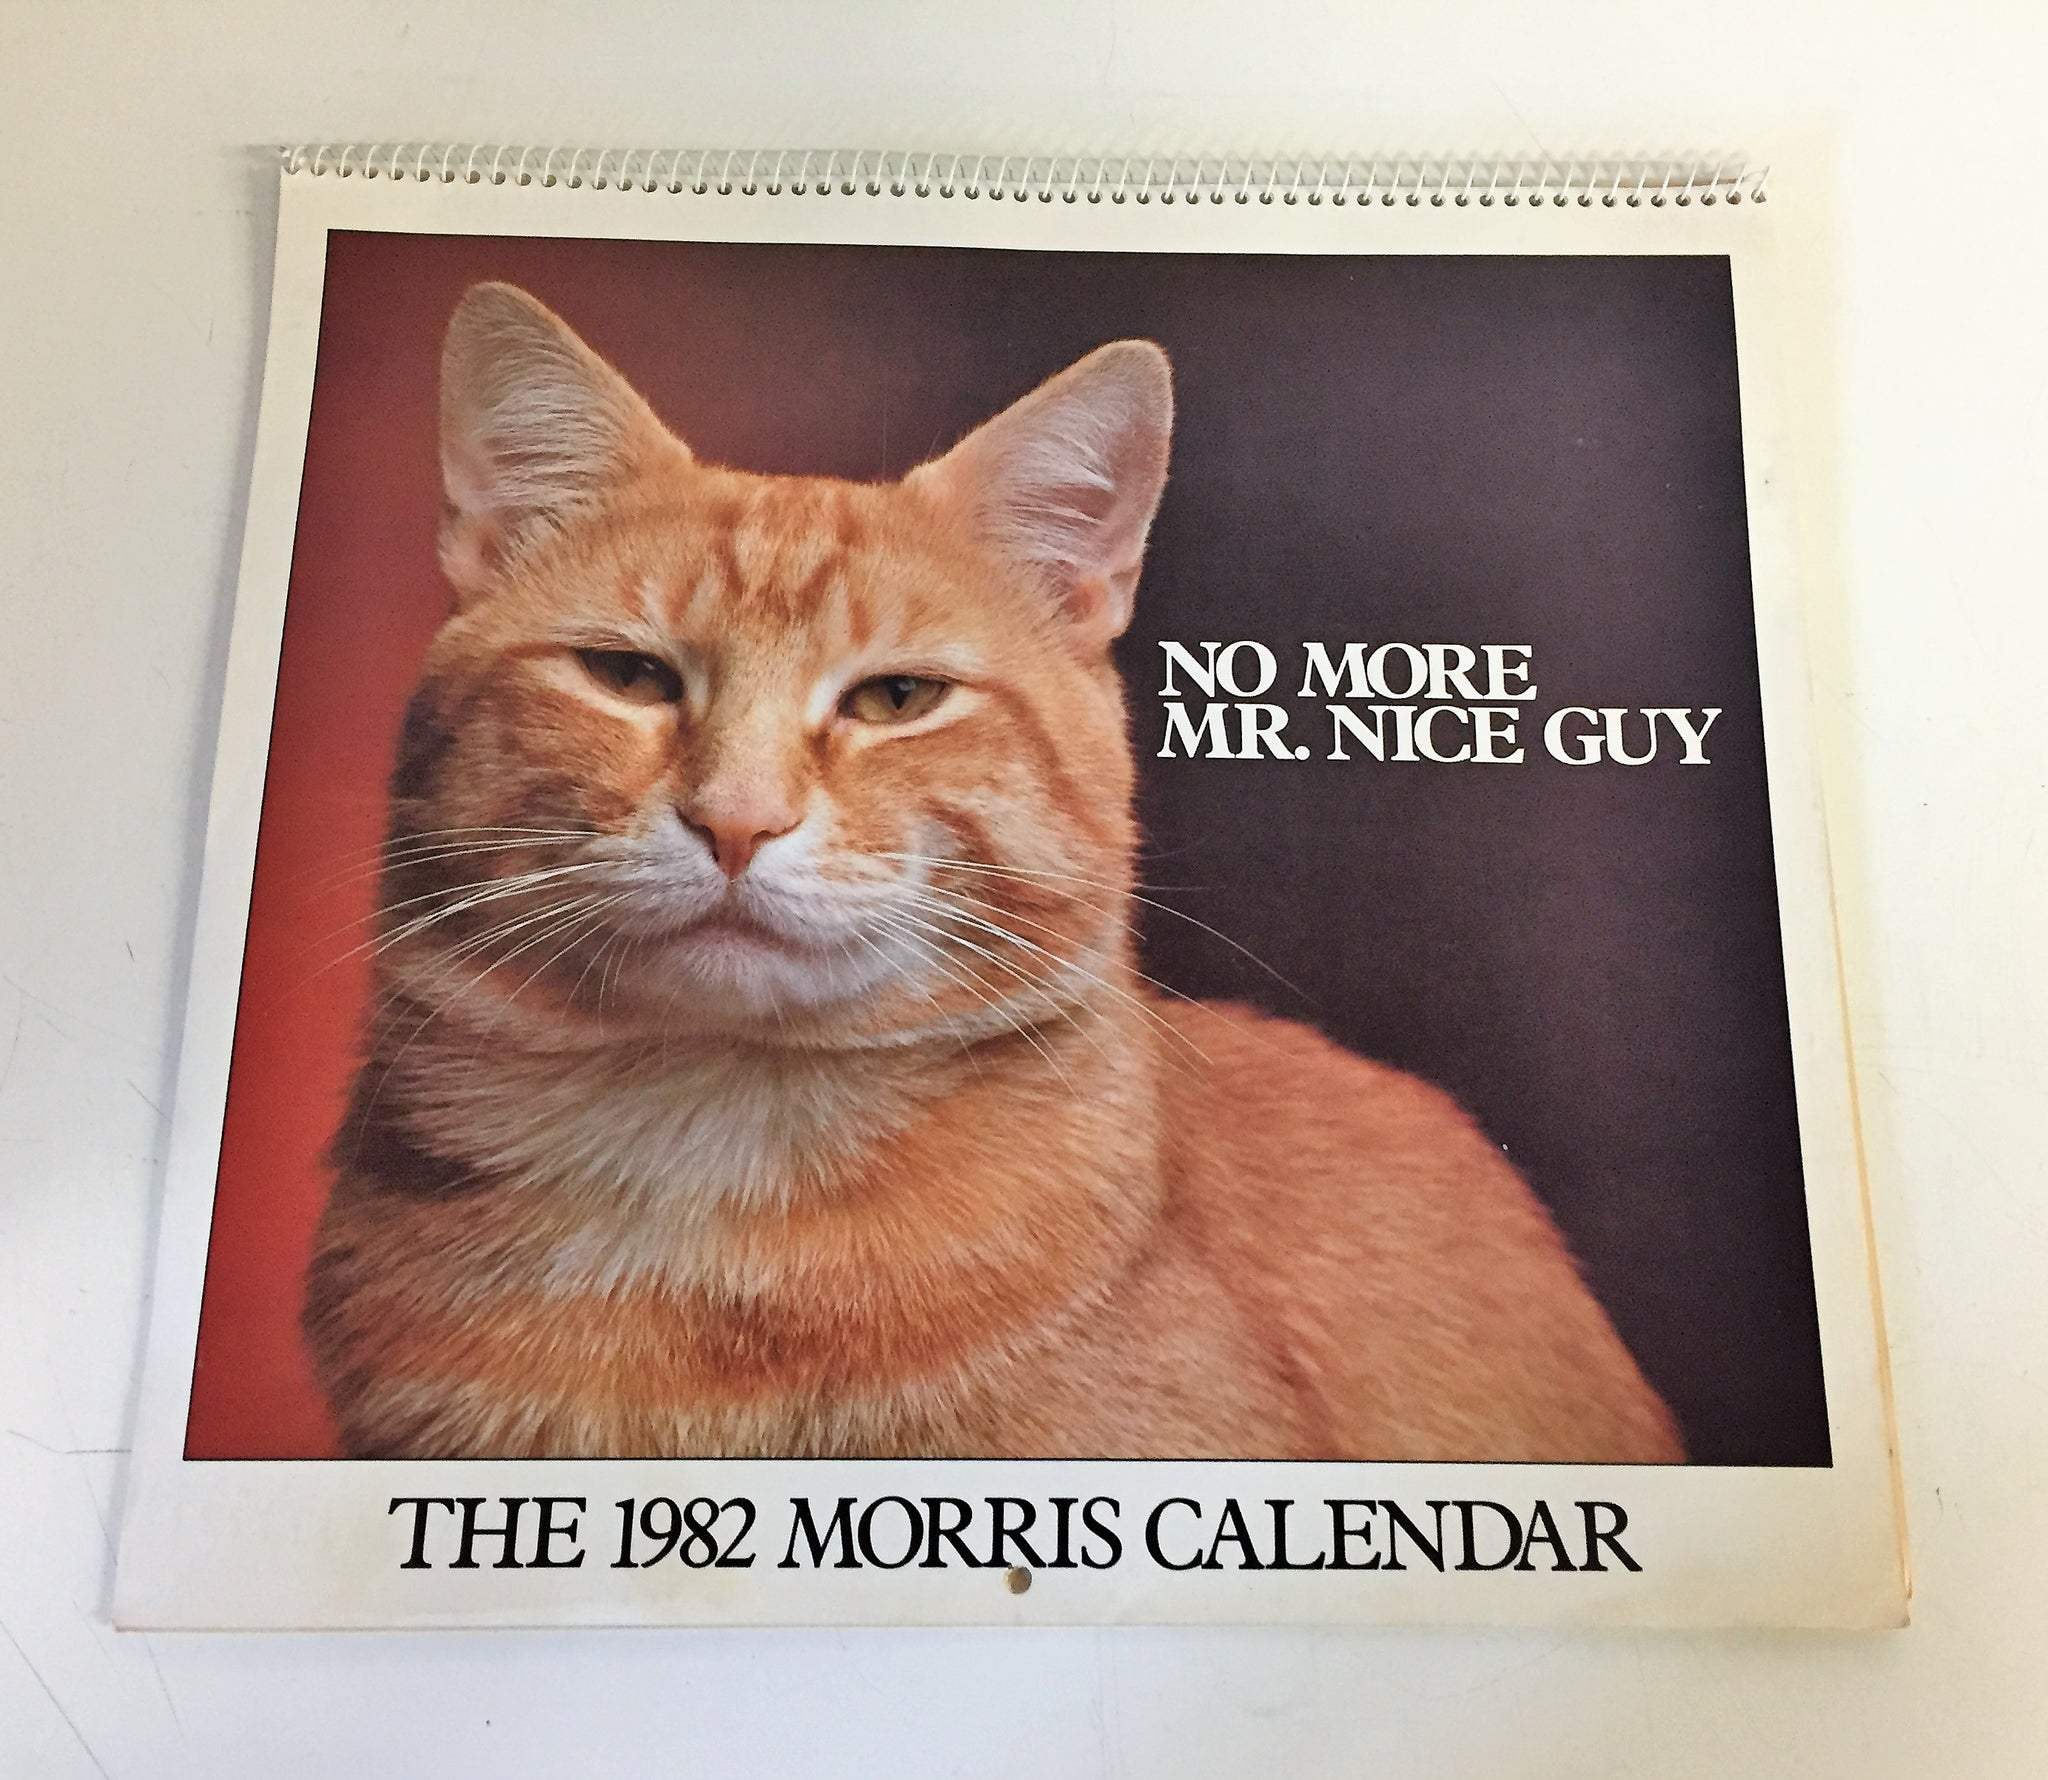 Vintage 1982 No More Mister Nice Guy Morris Calendar 9-Lives Advertising